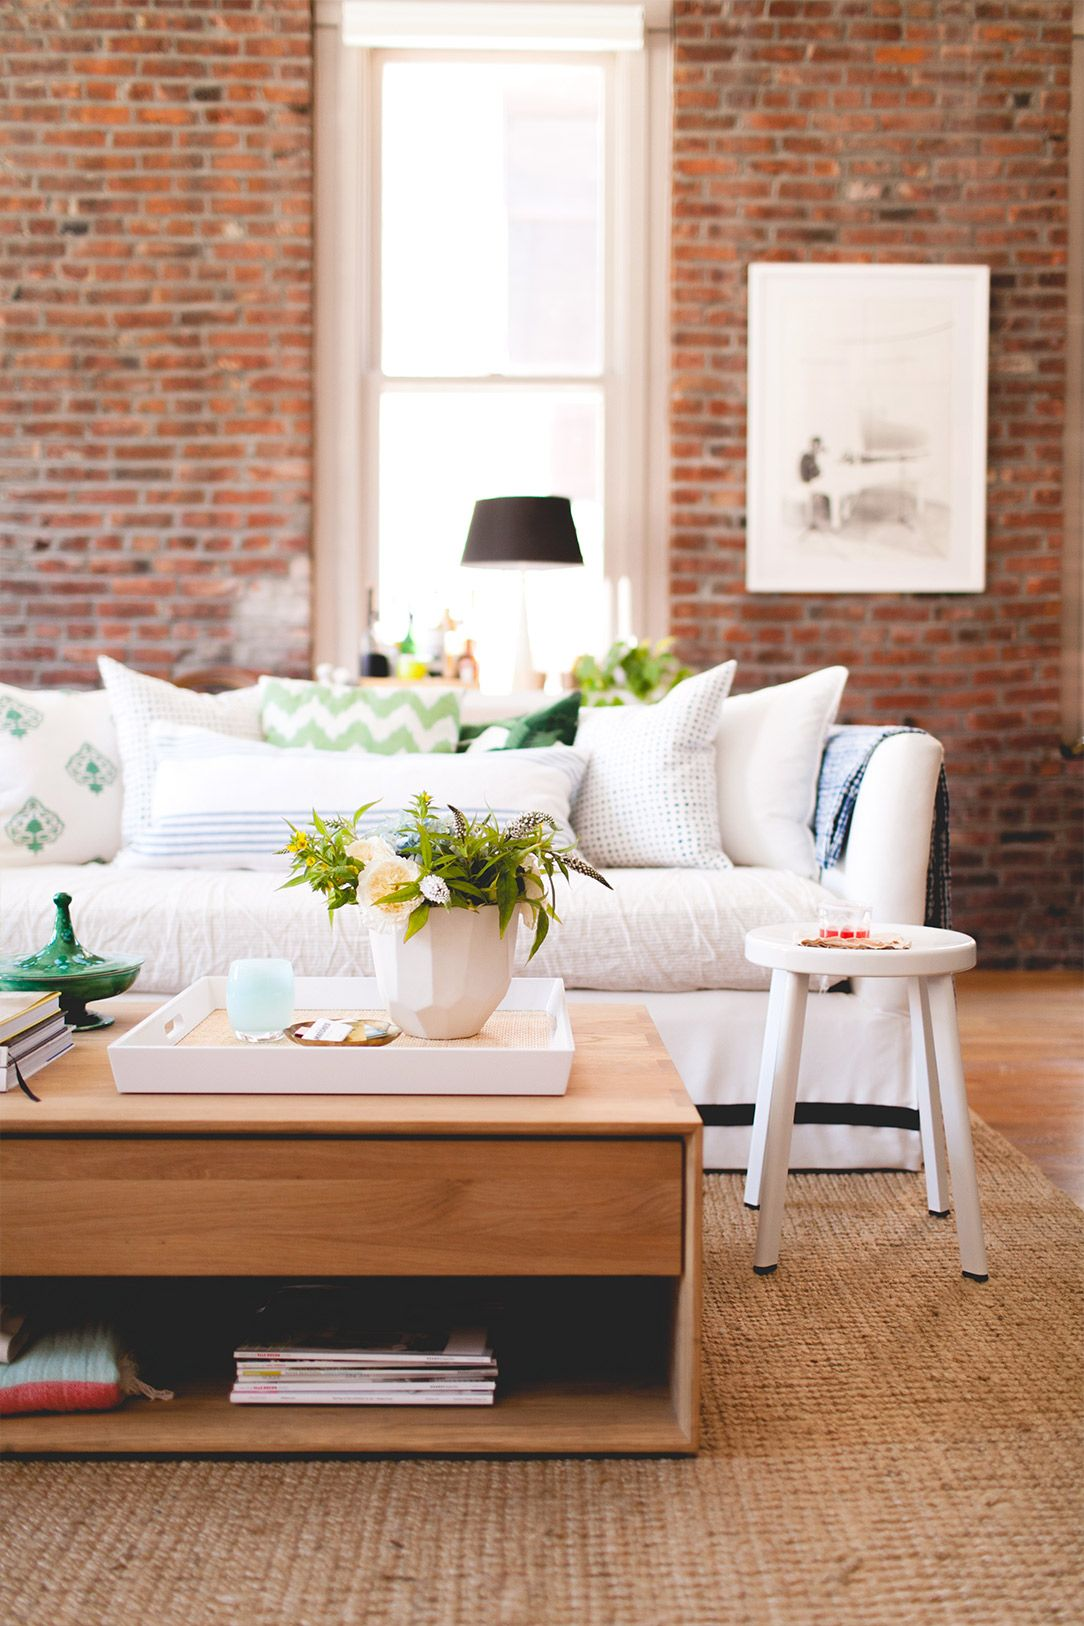 Best Interior Design Ideas Living Room: 12 Of The Best Interior Design Blogs To Bookmark Right Now